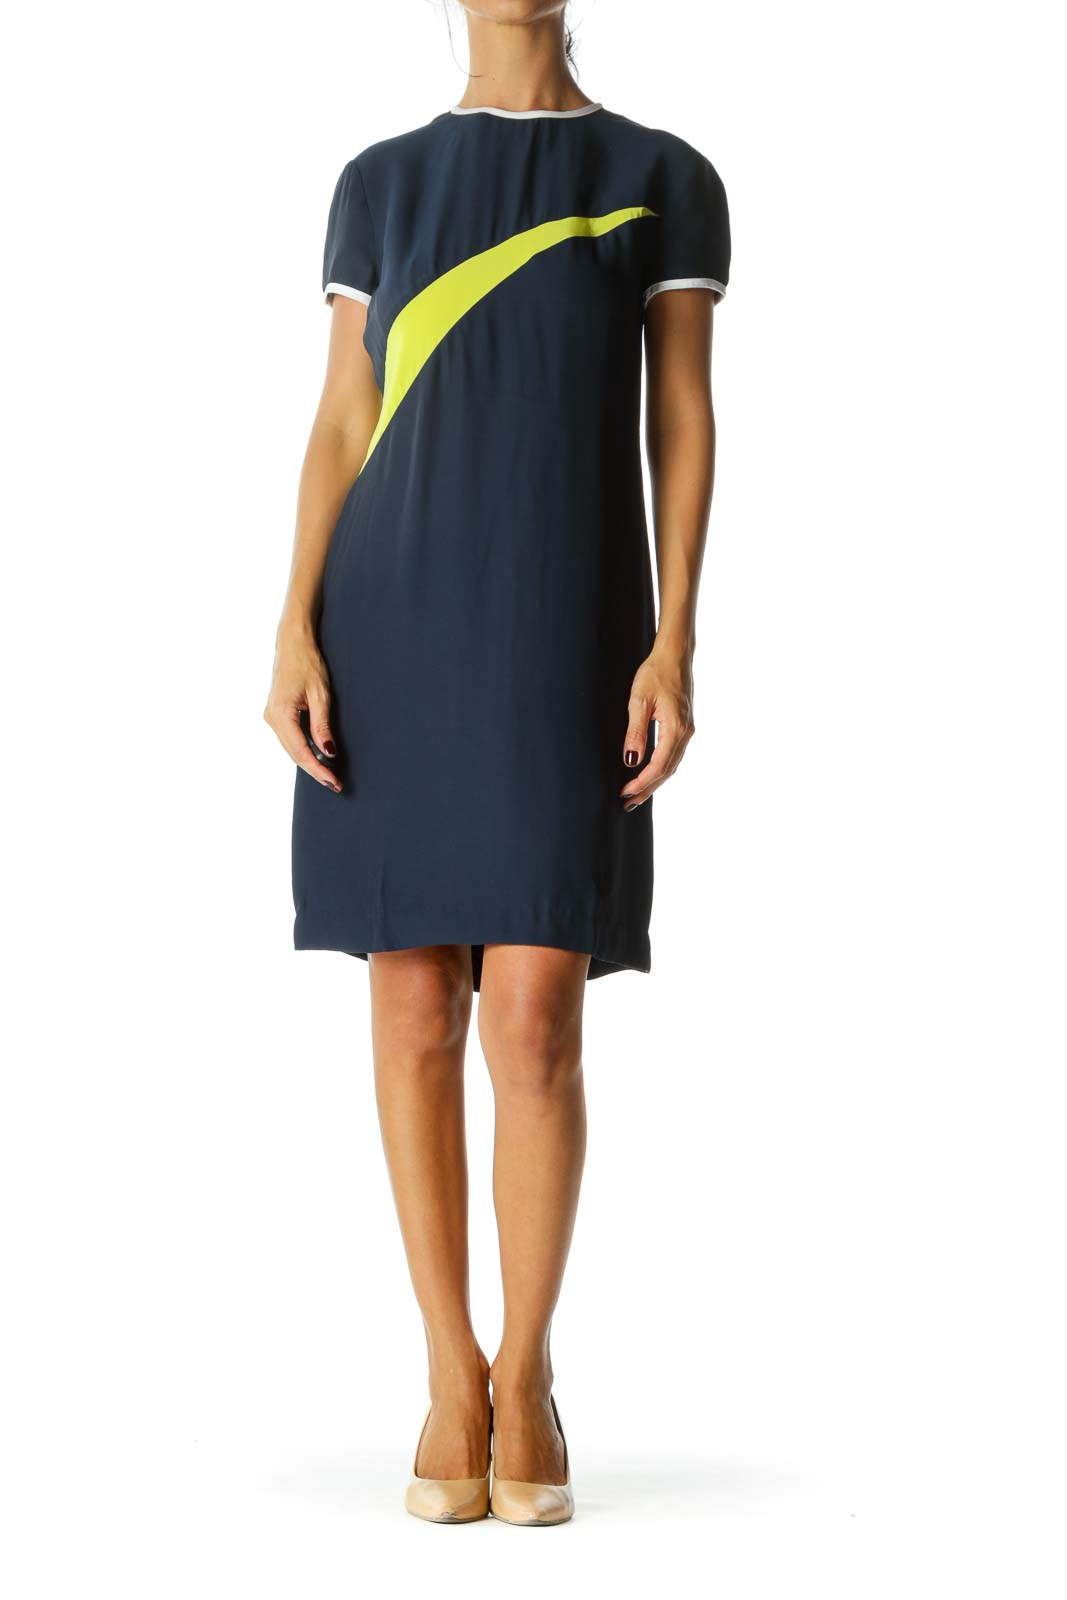 Navy Blue Fluorescent Green White Trim Short Sleeve Silk Blend Color Block Dress